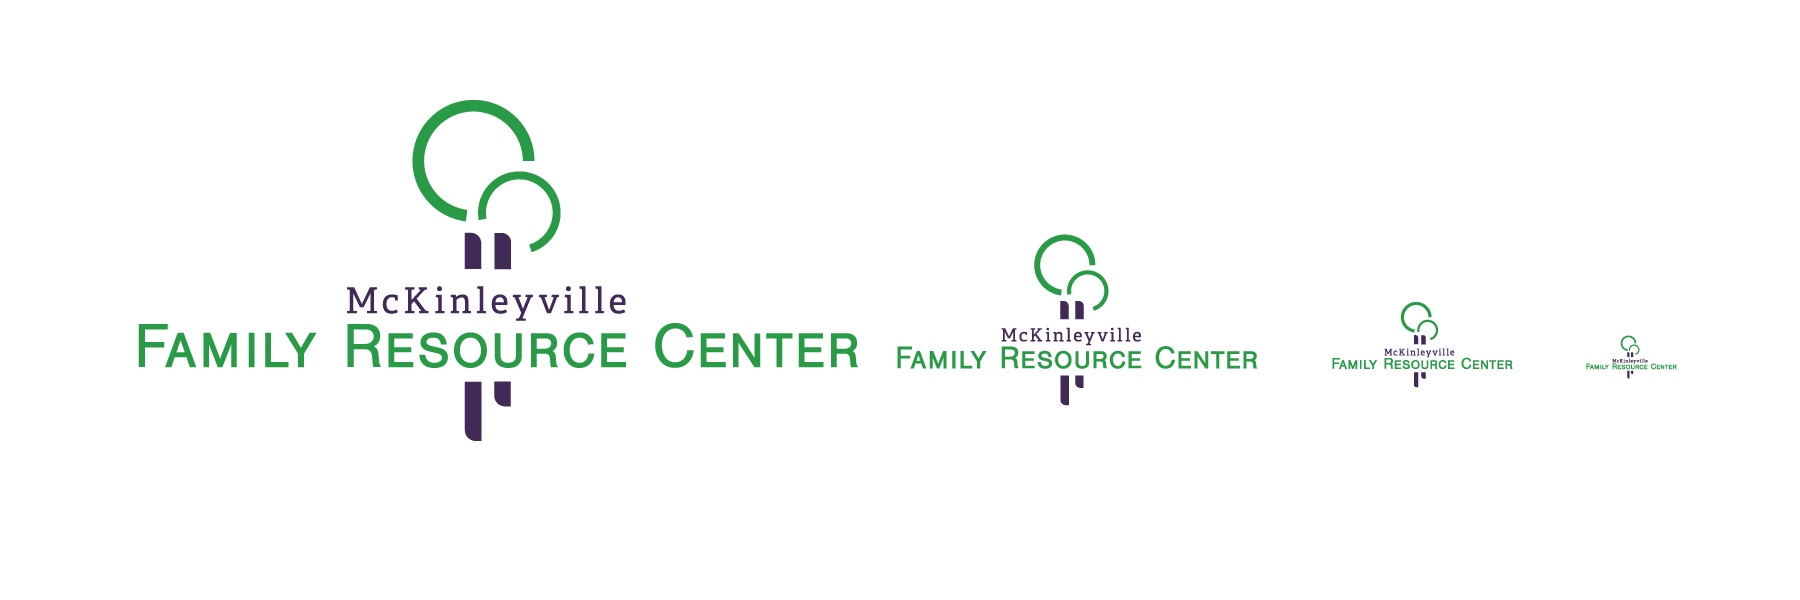 Size comparisons for McKinleyville Family Resource Center